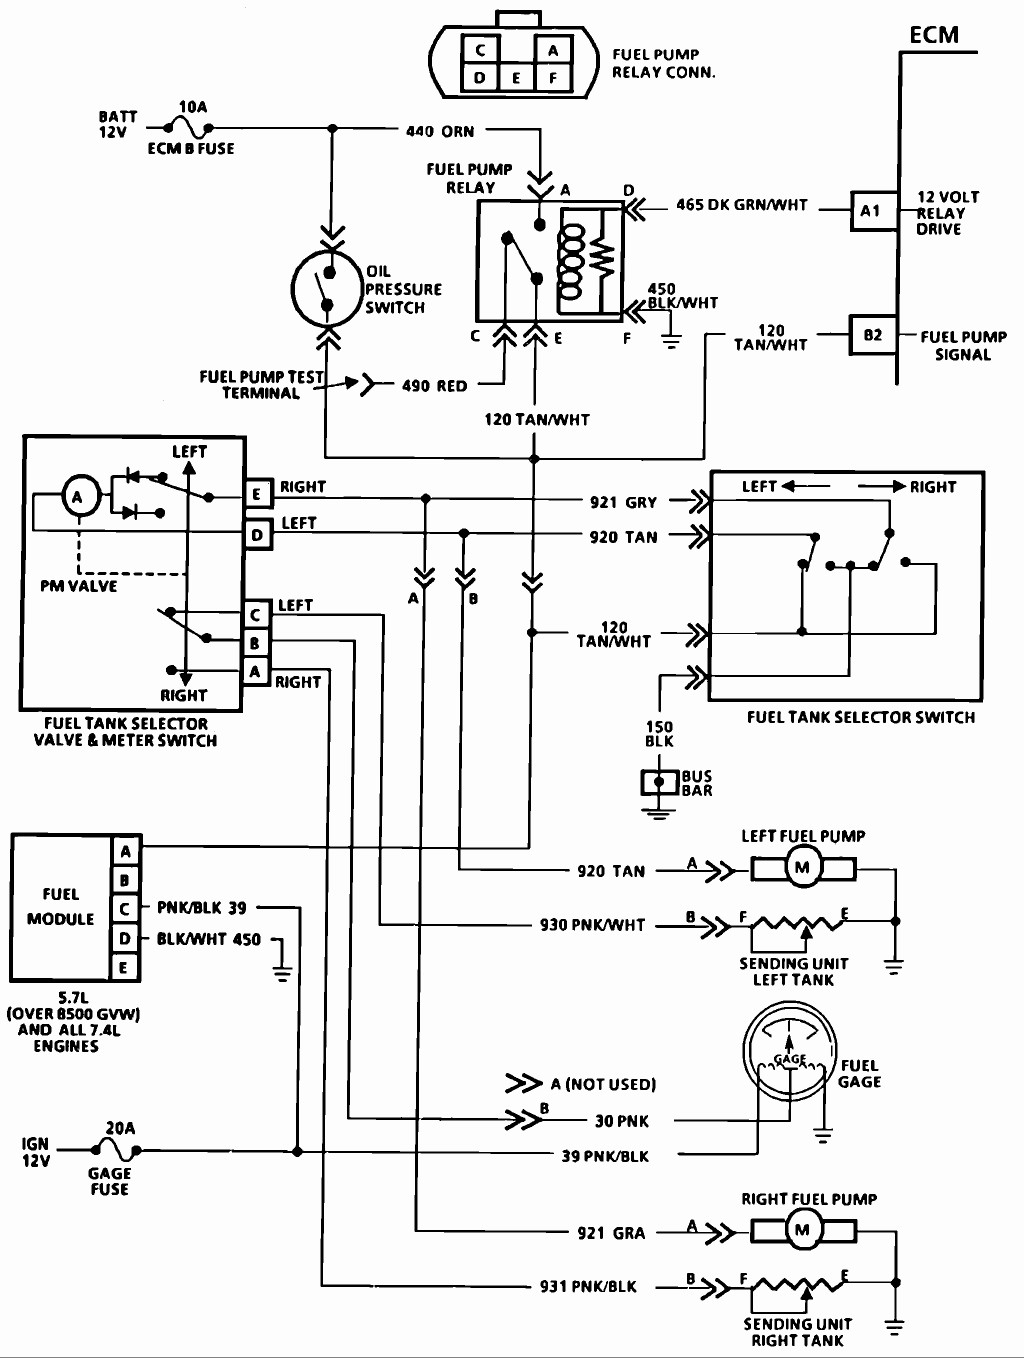 K5 Blazer Fuel Pump Wiring Diagram | Wiring Diagram on l6 wiring diagram, r6 wiring diagram, k40 wiring diagram, d2 wiring diagram, a2 wiring diagram, t1 wiring diagram, l3 wiring diagram, h3 wiring diagram, c5 wiring diagram, k30 wiring diagram, e1 wiring diagram, t5 wiring diagram, k7 wiring diagram, l7 wiring diagram, k100 wiring diagram, j1 wiring diagram, h4 wiring diagram, g6 wiring diagram, a4 wiring diagram, h1 wiring diagram,